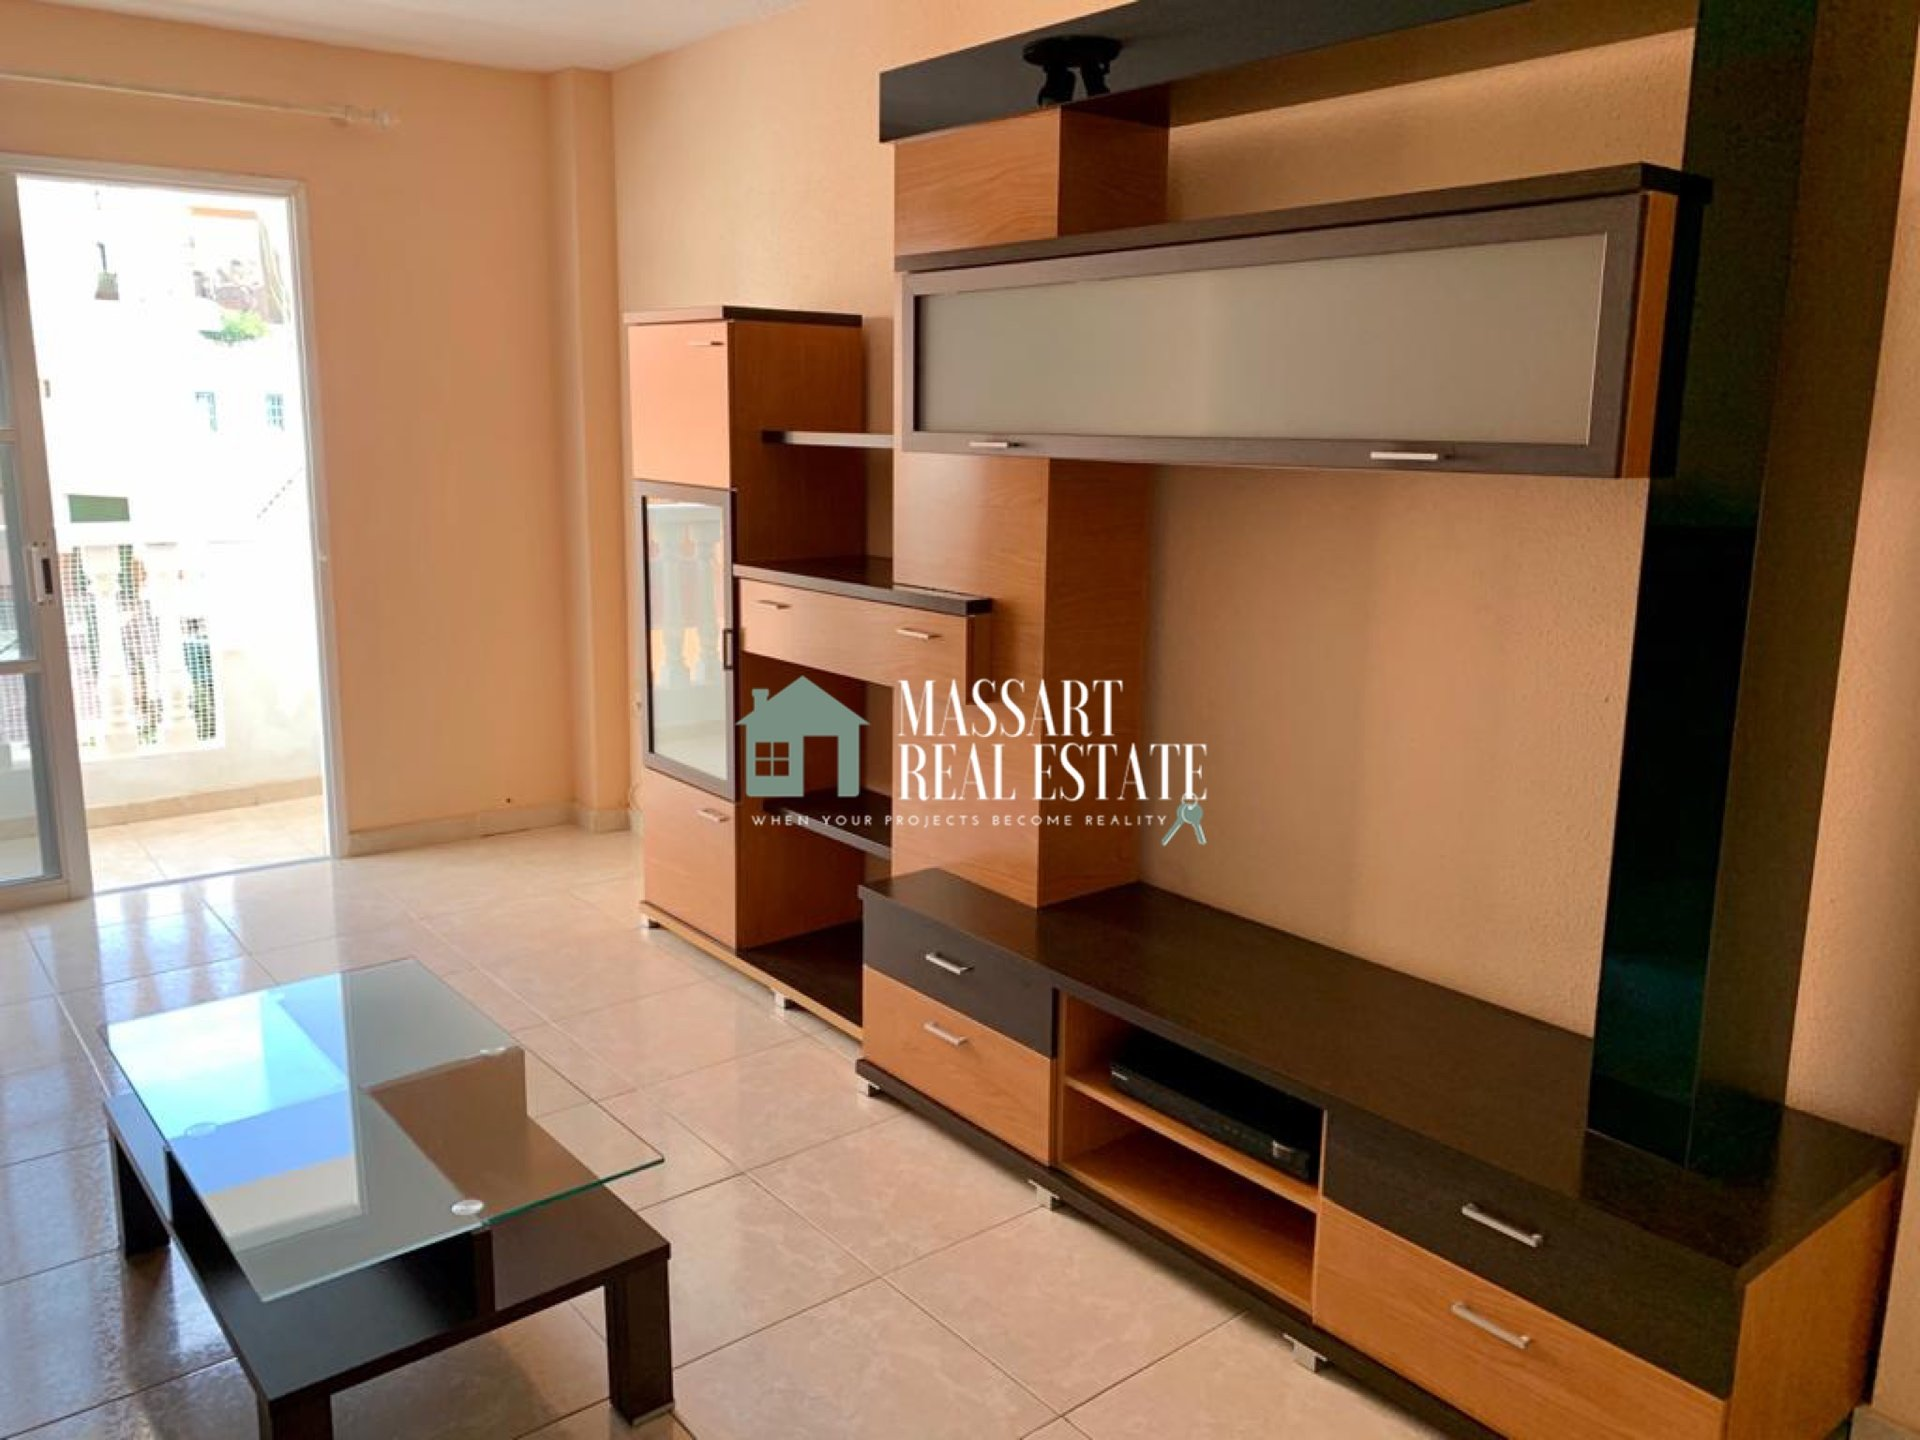 For sale in the center of Adeje (Plaza César Manrique), 75 m2 apartment in very good condition located on a second floor.